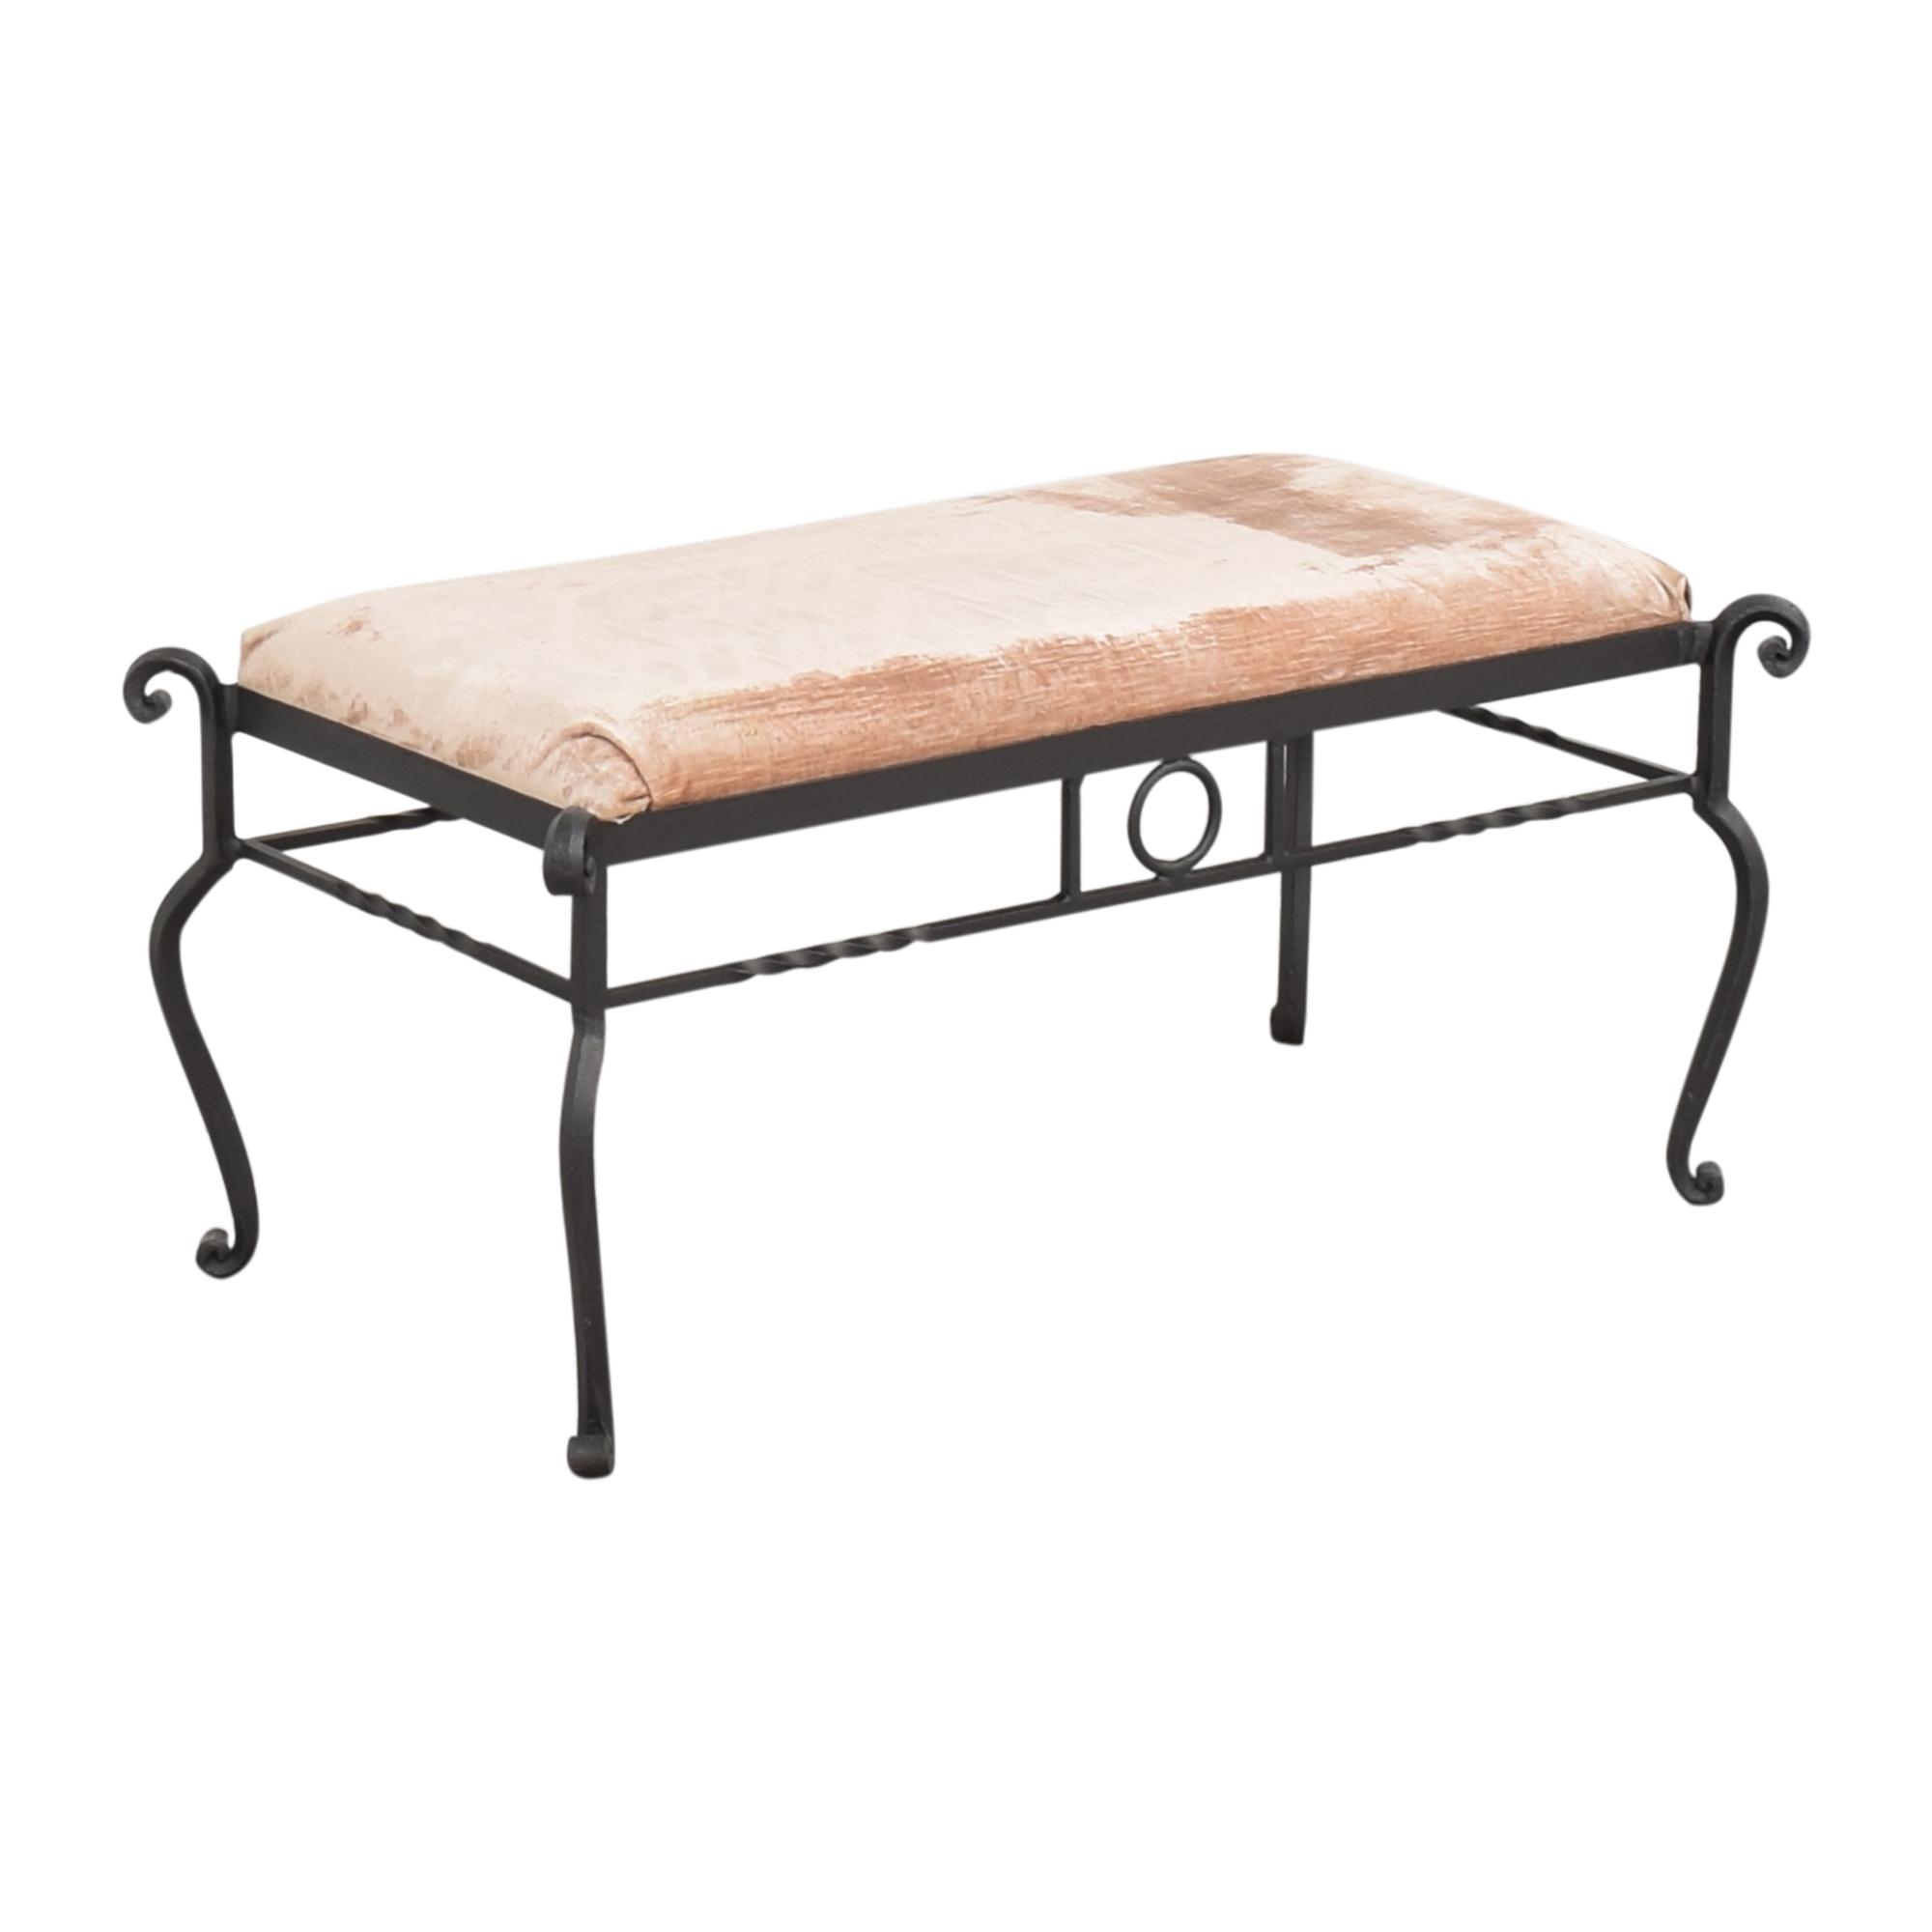 Charles P. Rogers Charles P. Rogers Iron Bench Benches